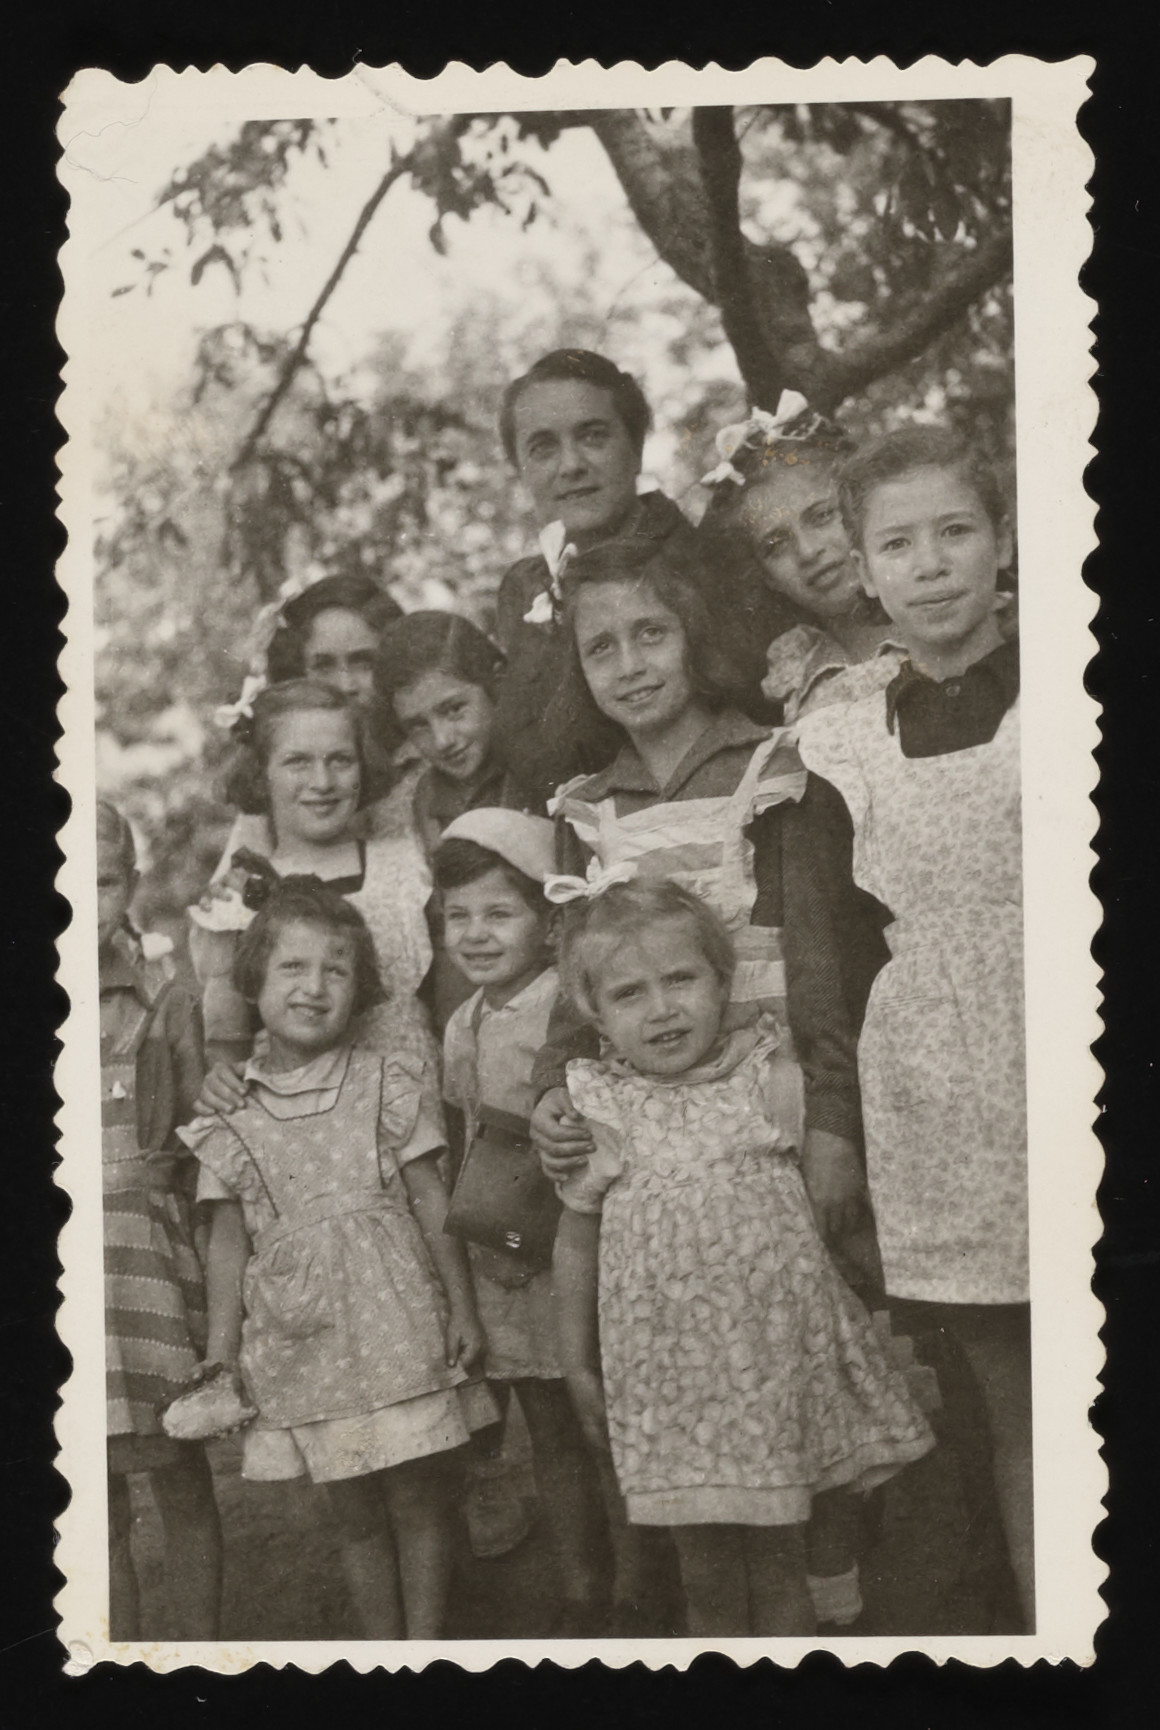 Group portrait of children in a Zionist orphanage outside of Budapest.  Pictured in the back is the director, Zsofi Brunn.